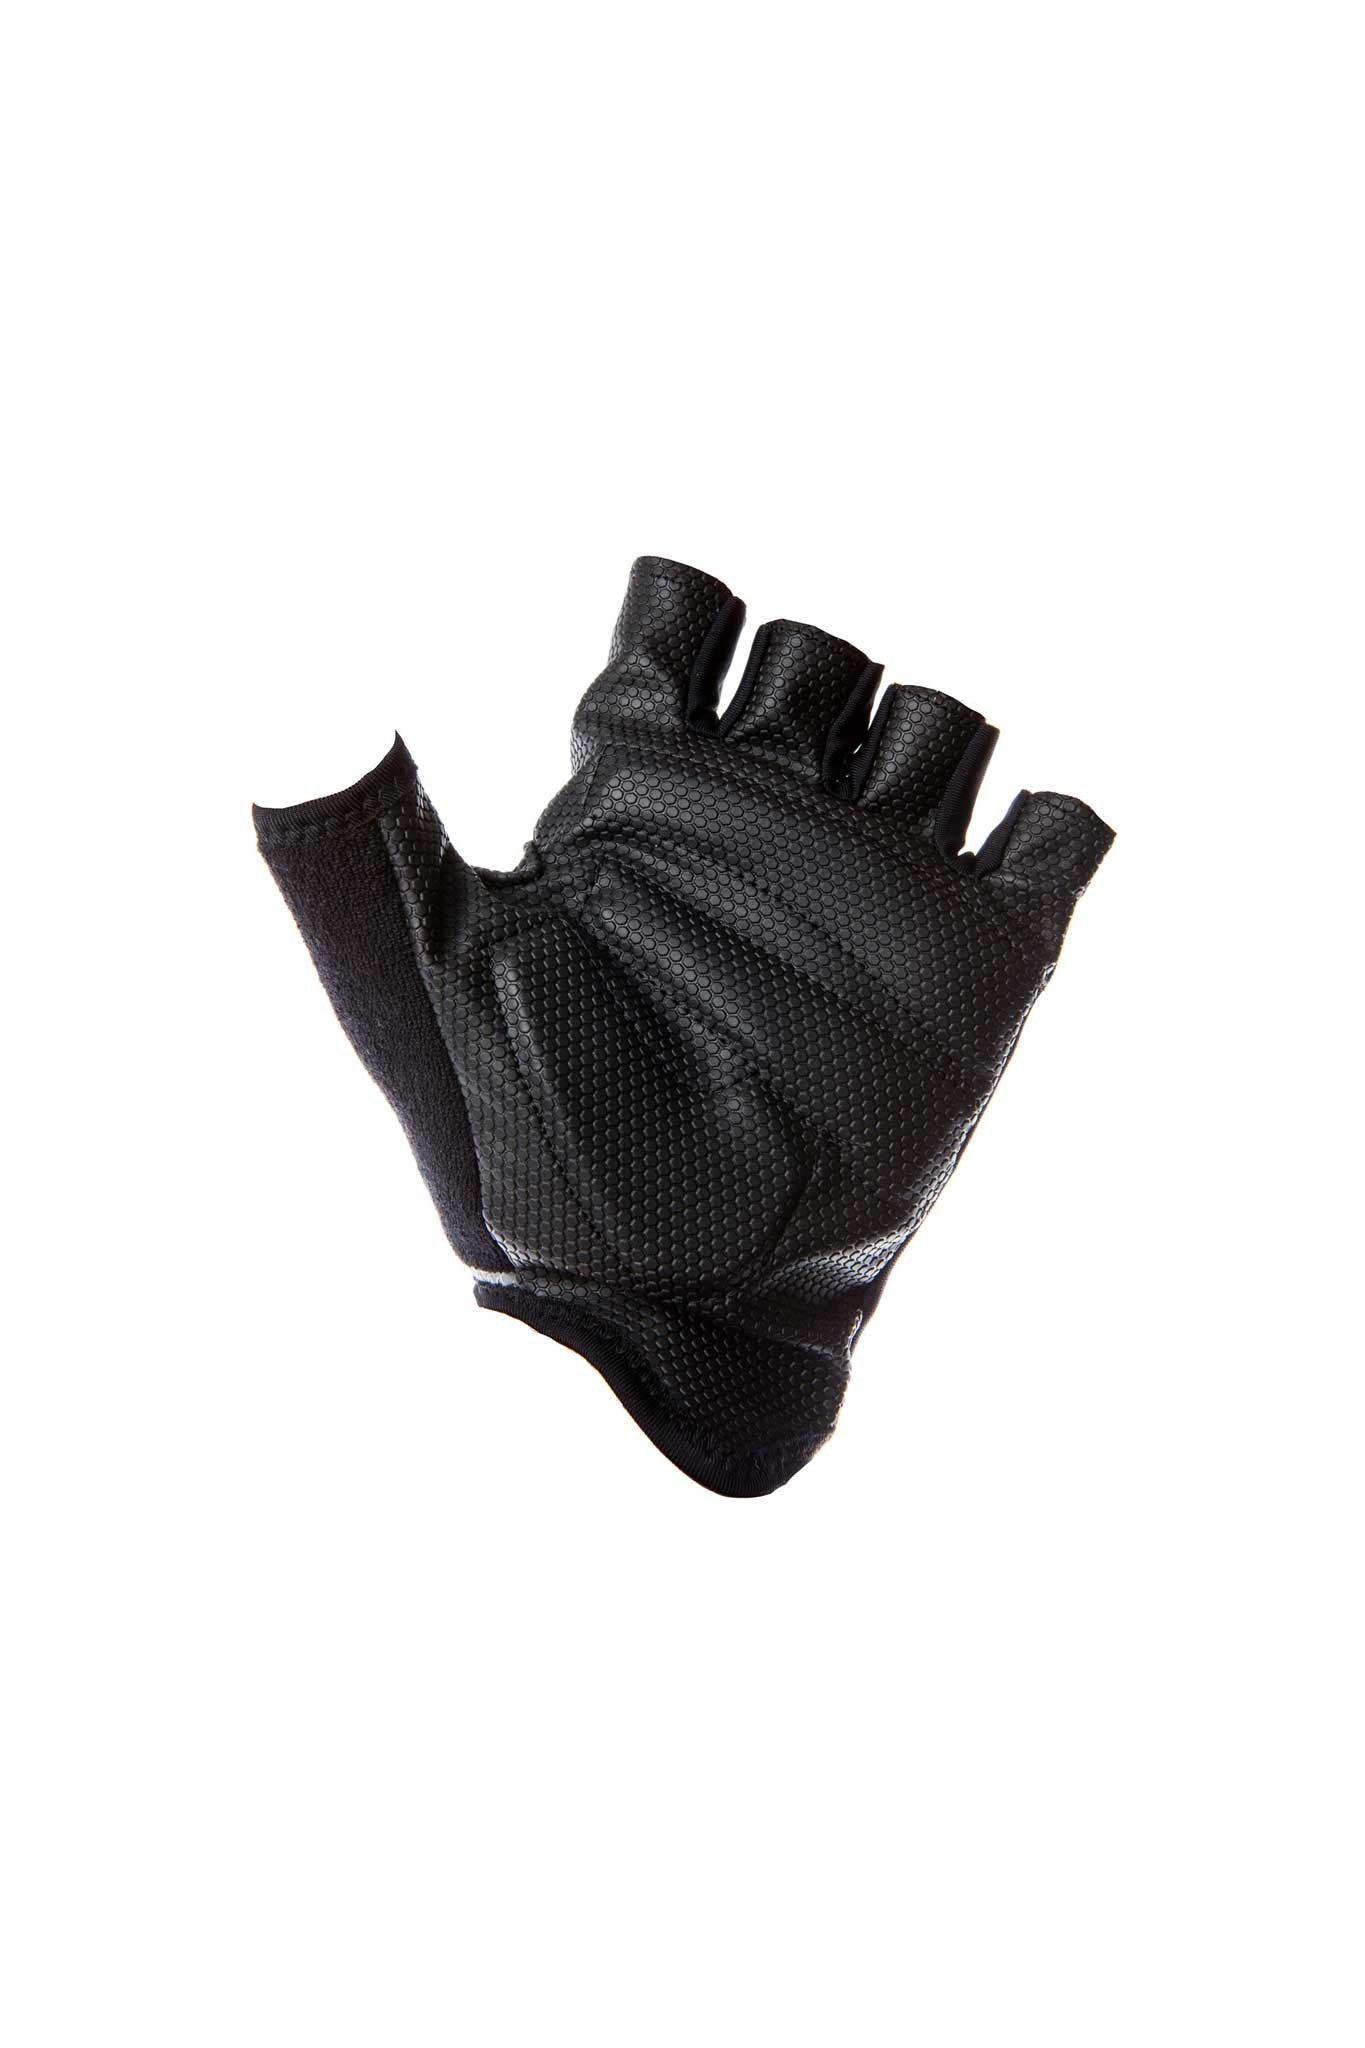 The Concrete Jungle Lightweight gloves by Biketivist- palm view